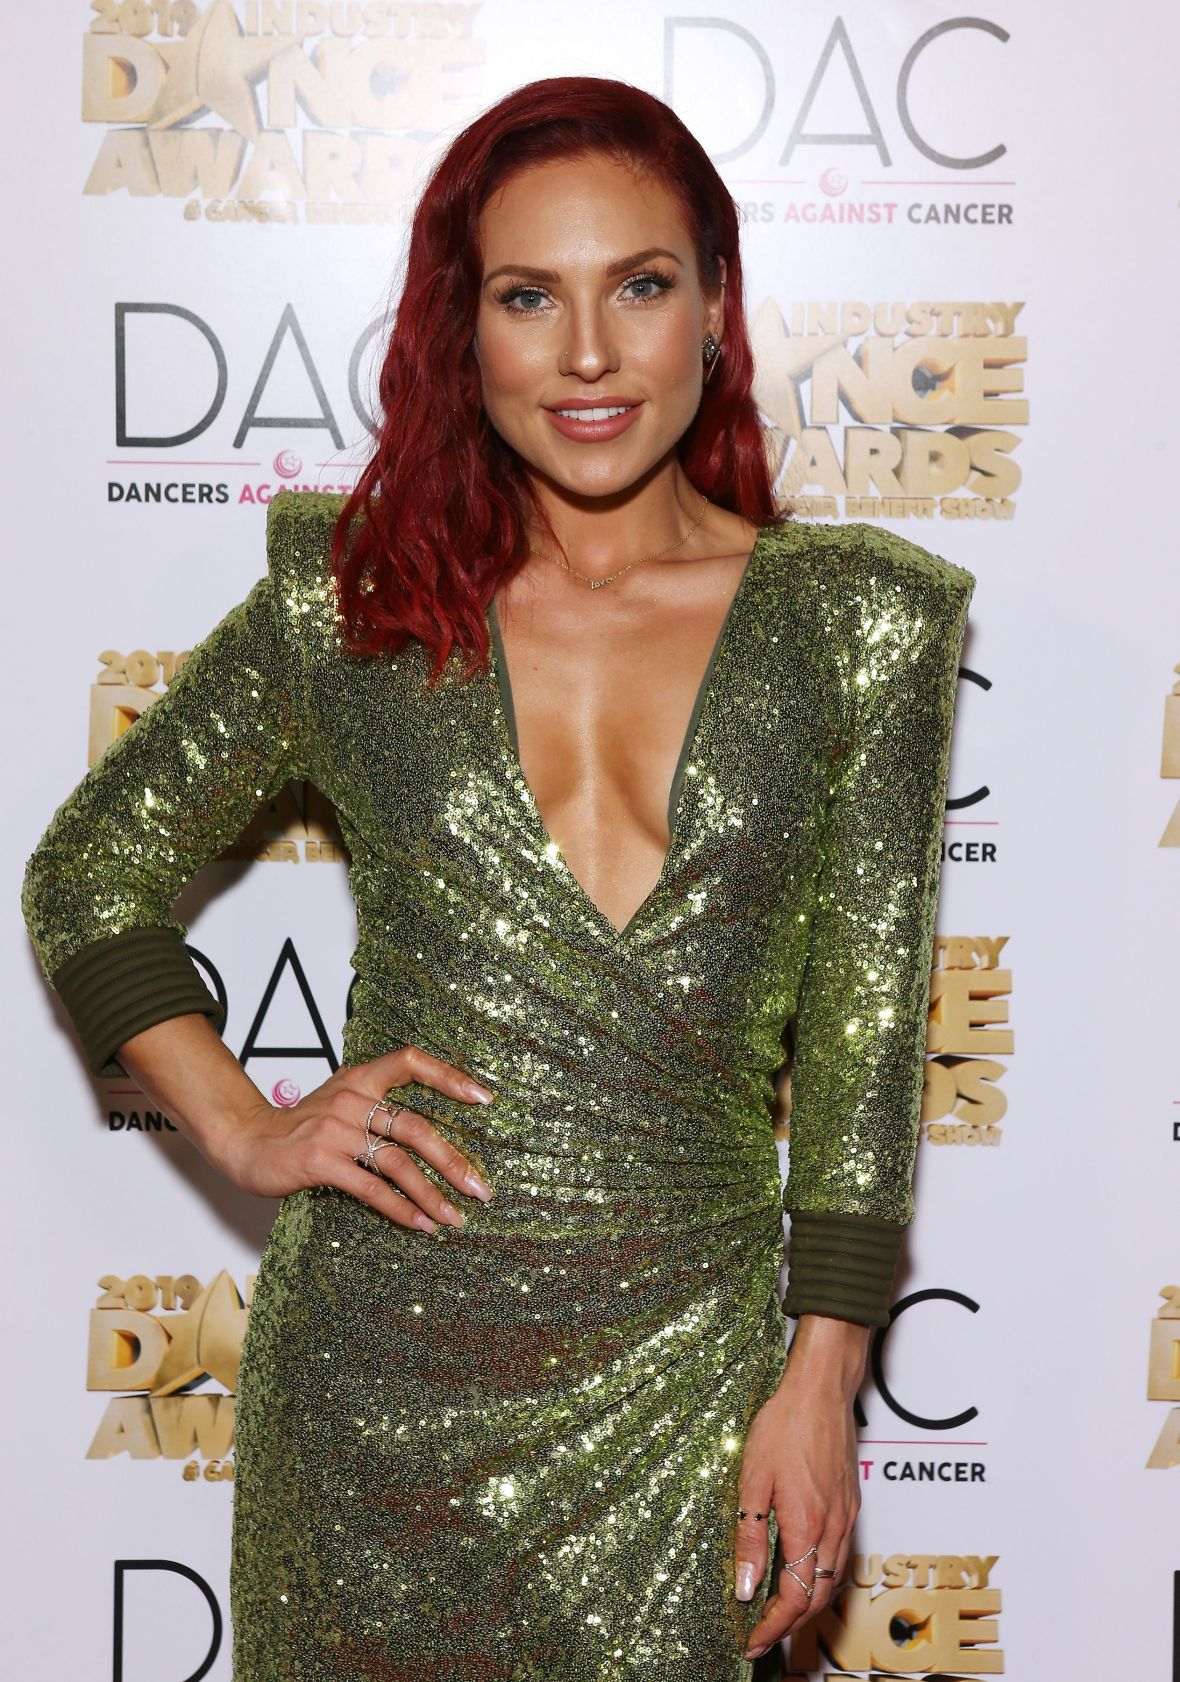 DWTS Pro Sharna Burgess Diet and Fitness Secrets